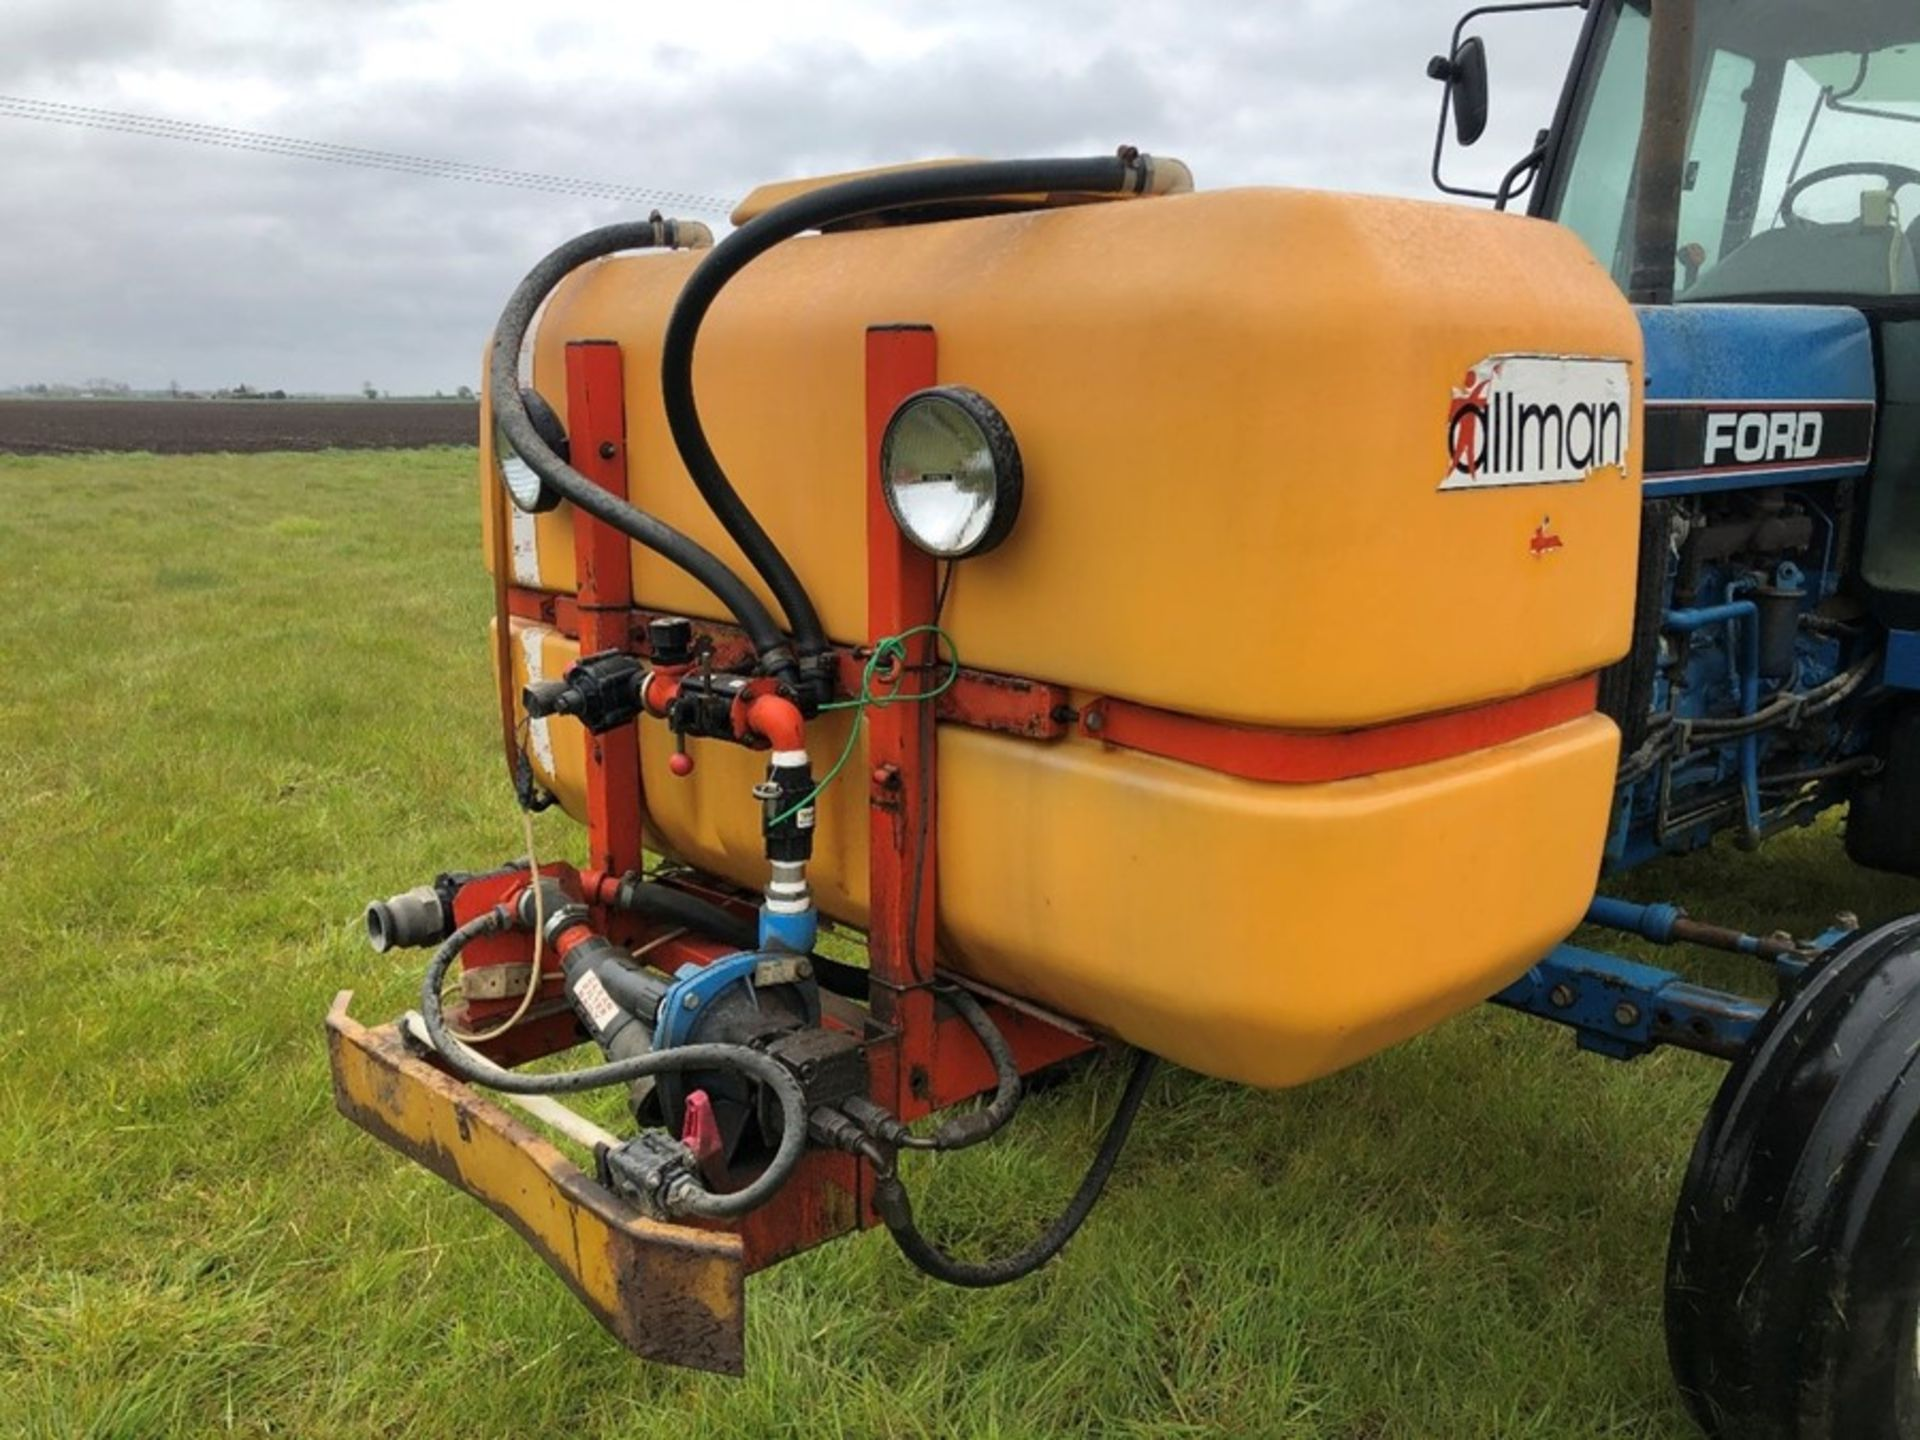 Allman Unibuilt 20m mounted sprayer, 1000lt tank with Allman front tank, not NSTS tested, manual - Image 2 of 2